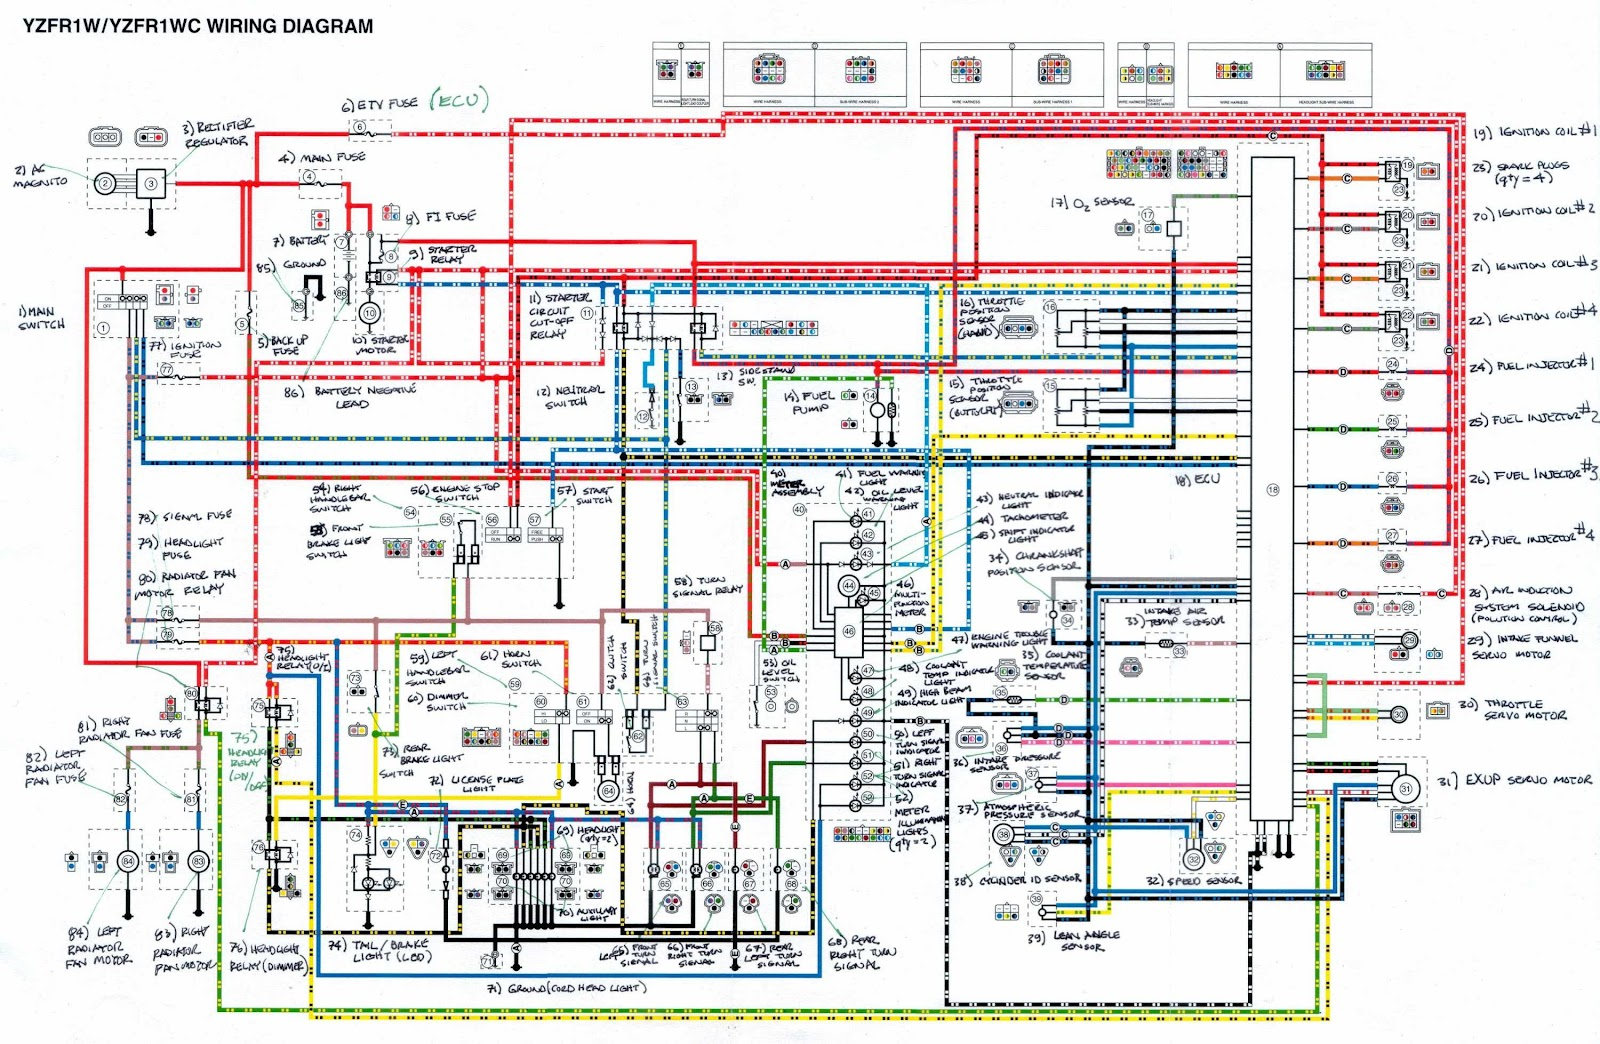 2000 yamaha r6 wiring diagram honda 125 motorcycle yzf r1 all about